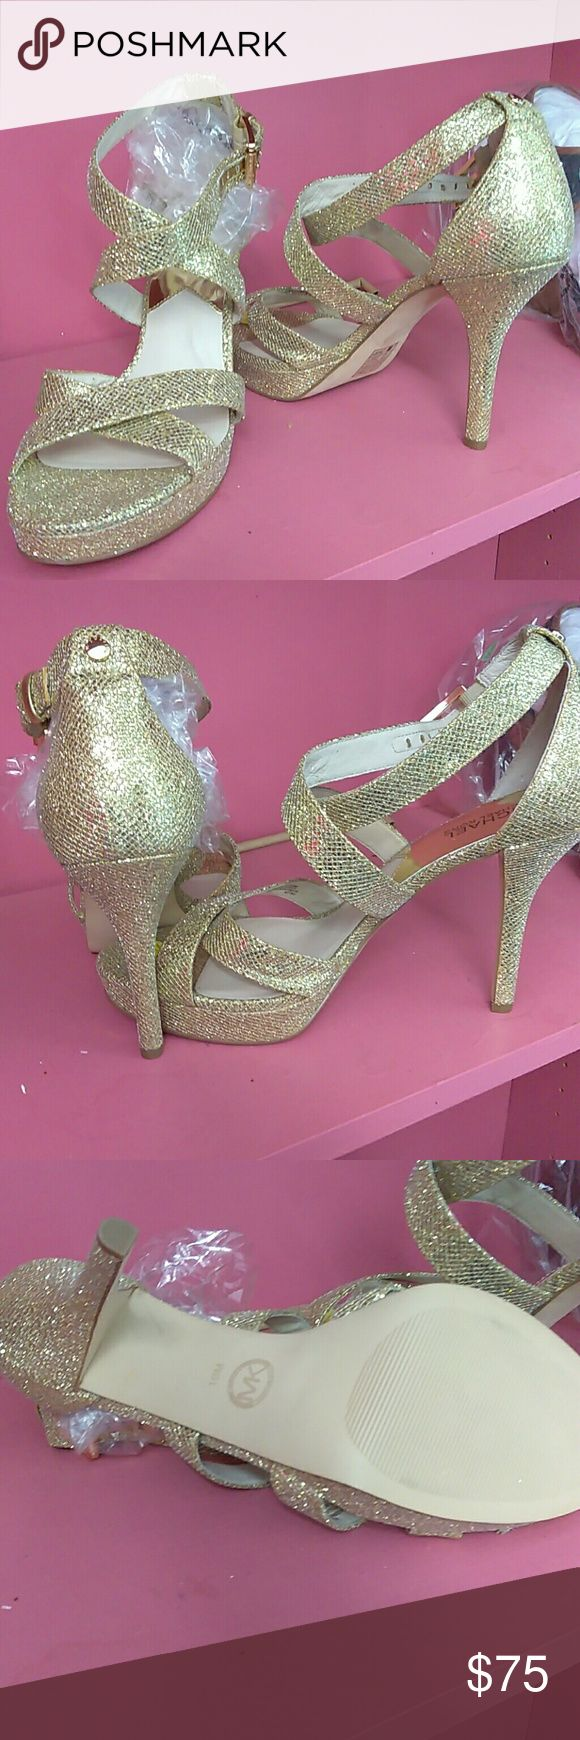 Gold evening shoes Shiny gold high heels Micheal kors  Shoes Heels